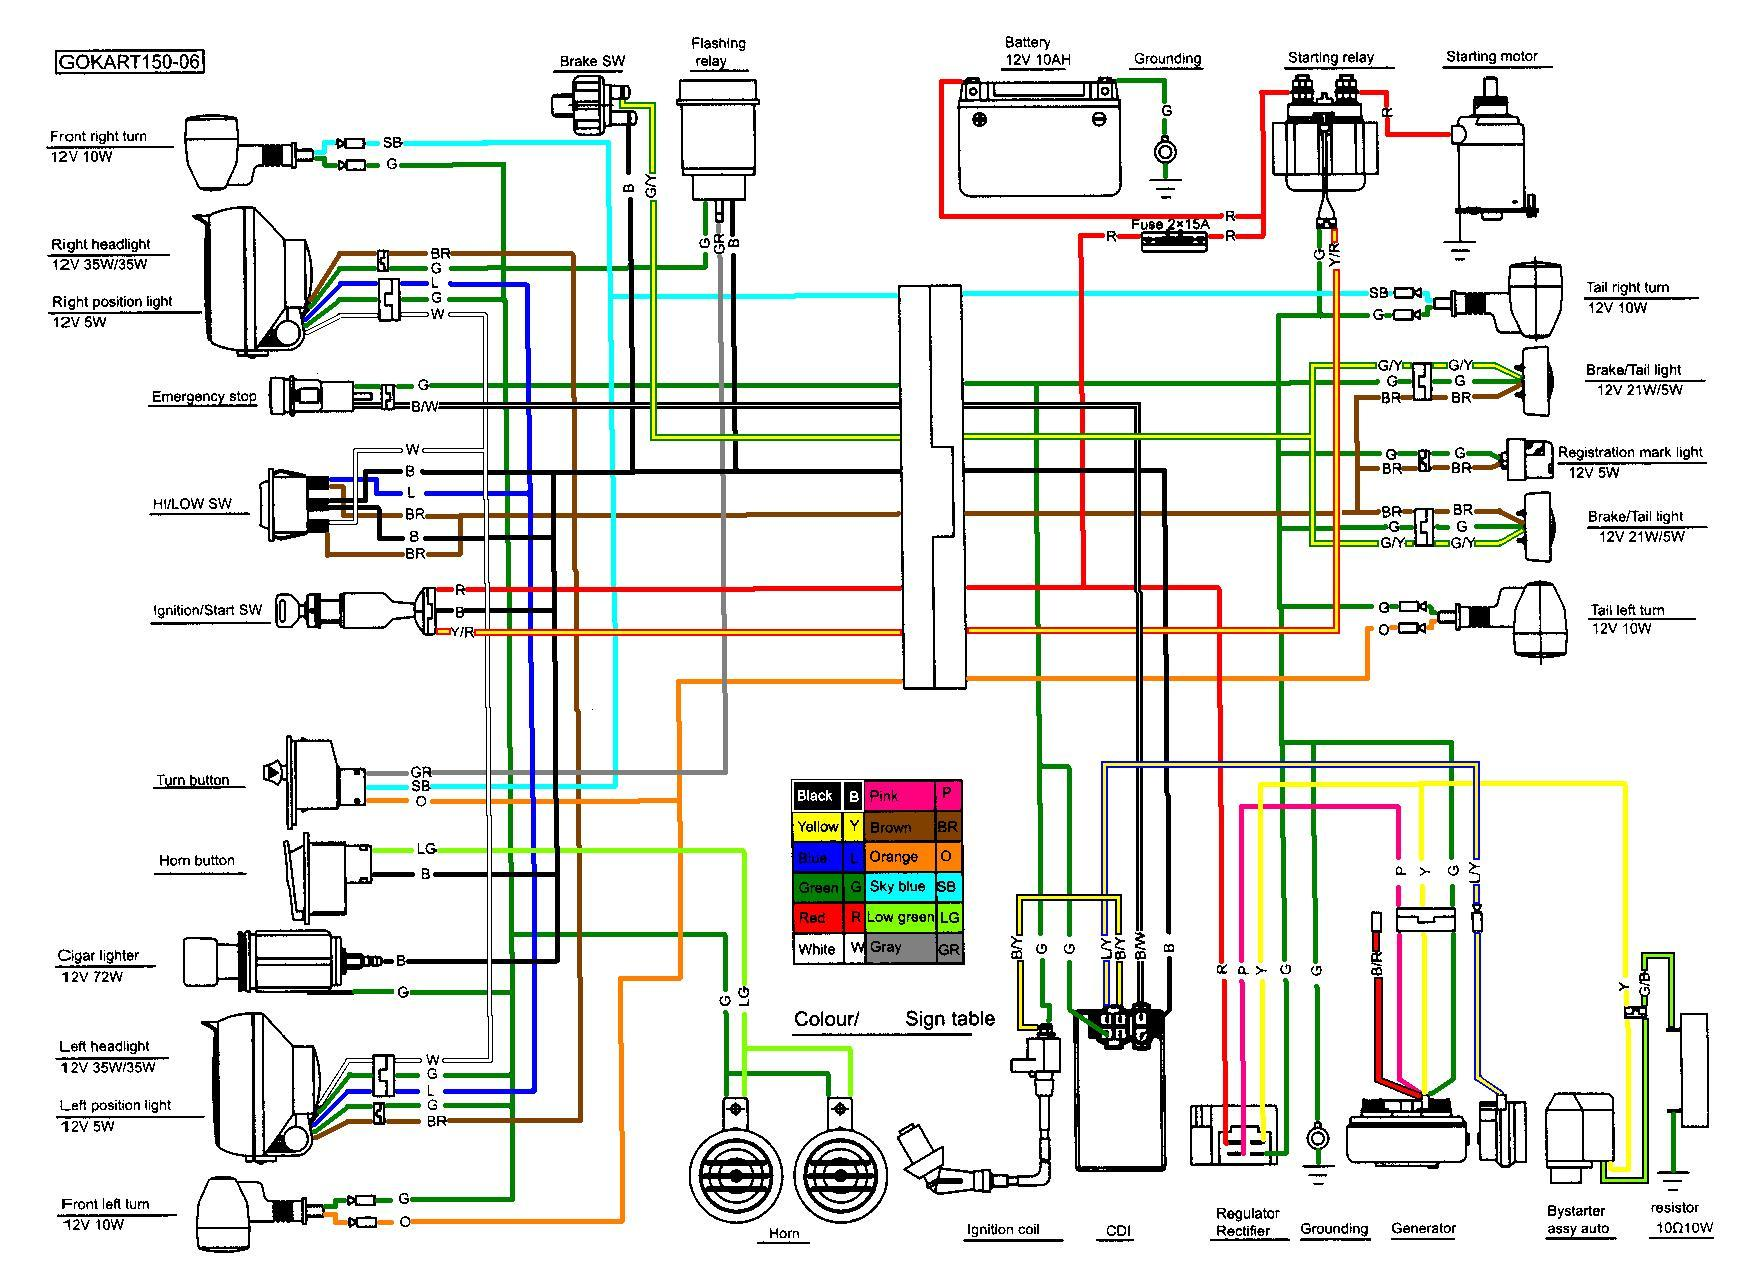 04 60 wiring diagram vip 50cc scooter wiring diagram wiring diagram data  vip 50cc scooter wiring diagram